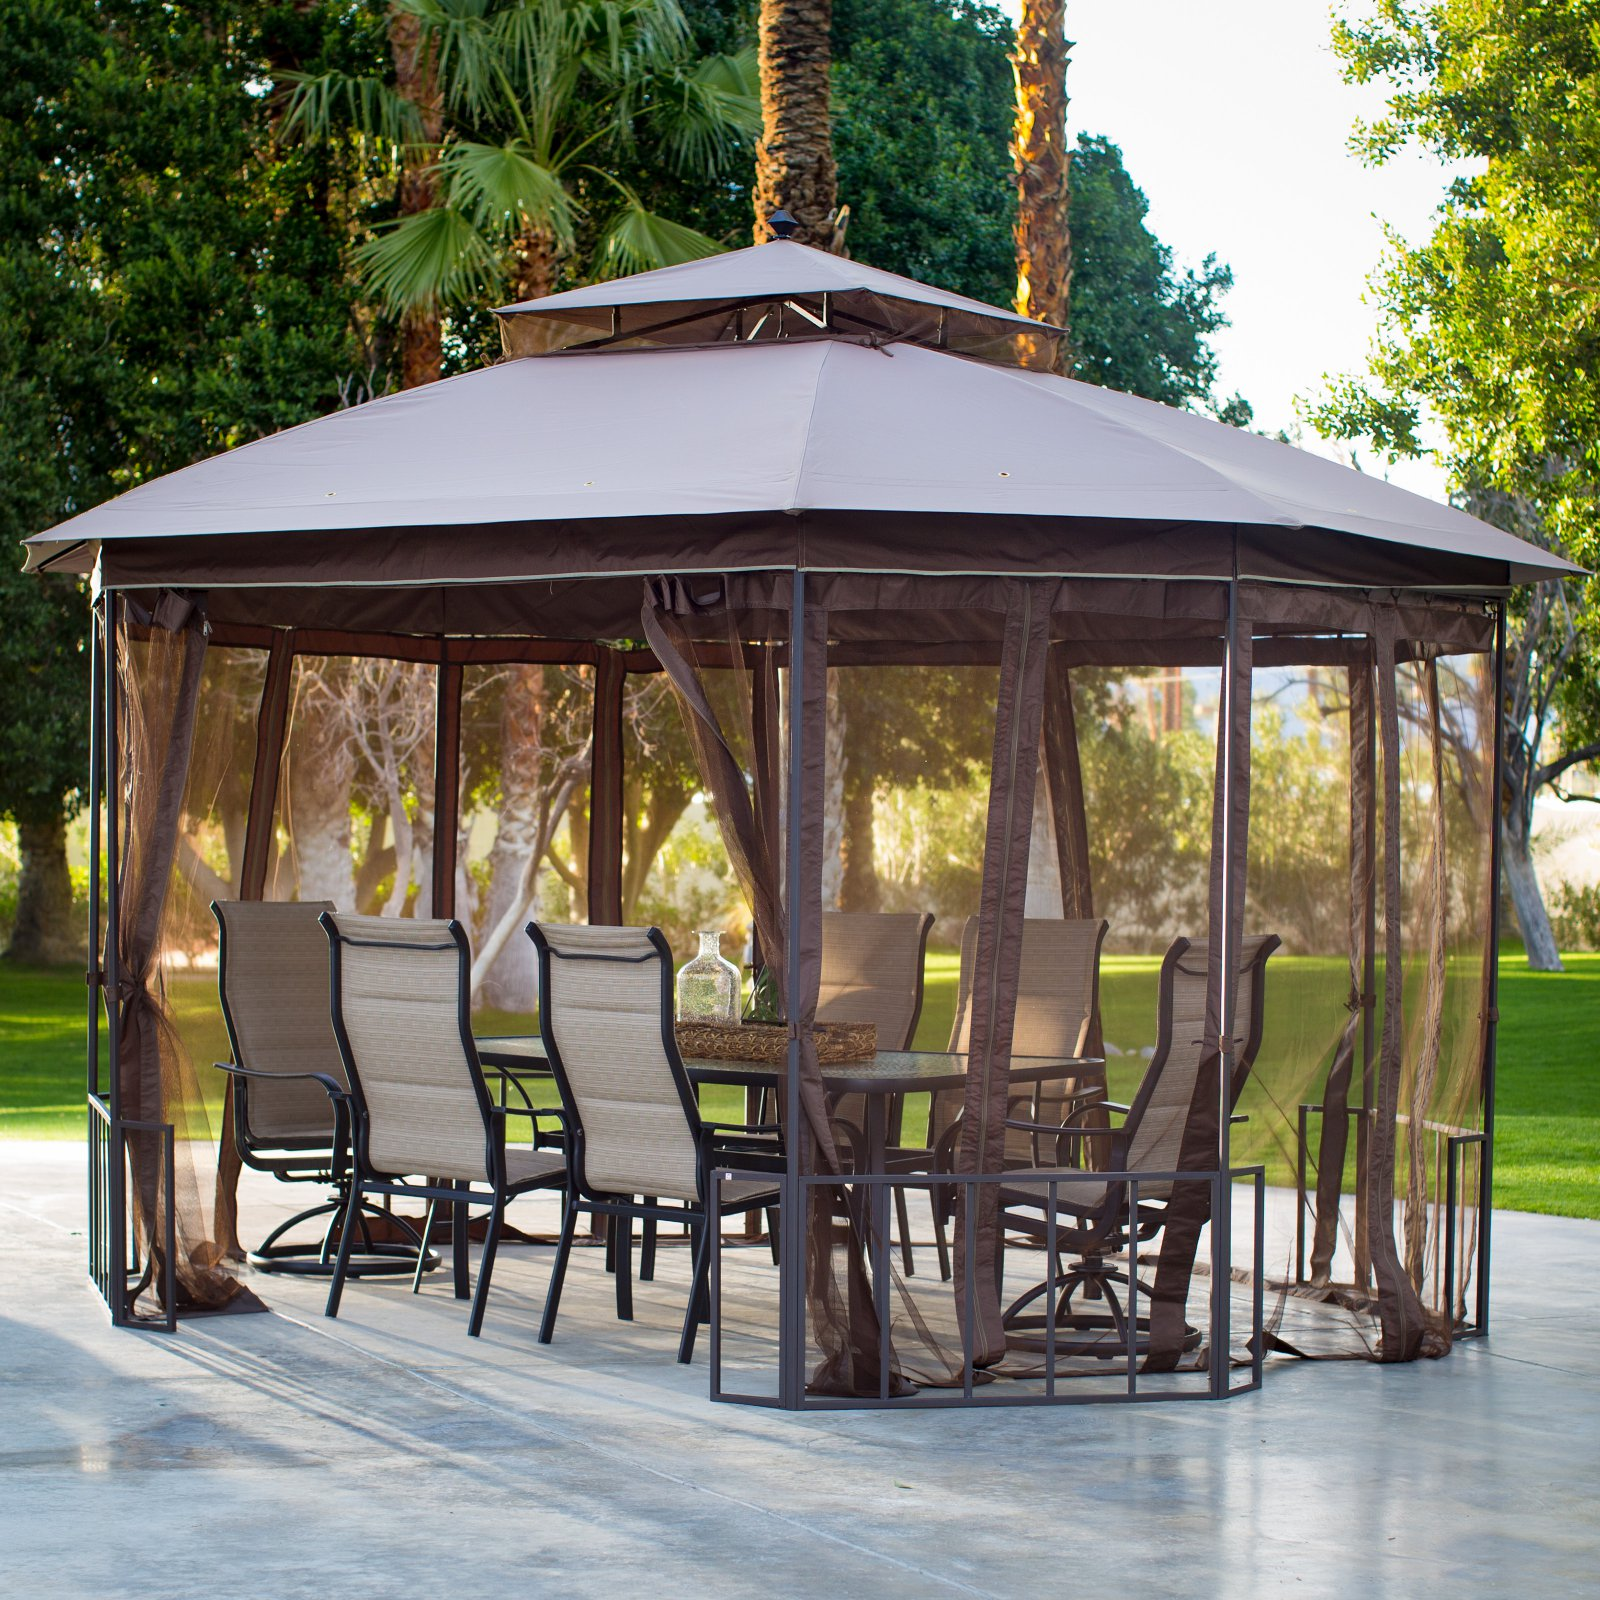 Belham Living Octagon 10 x 12 ft. Gazebo with Curtains by